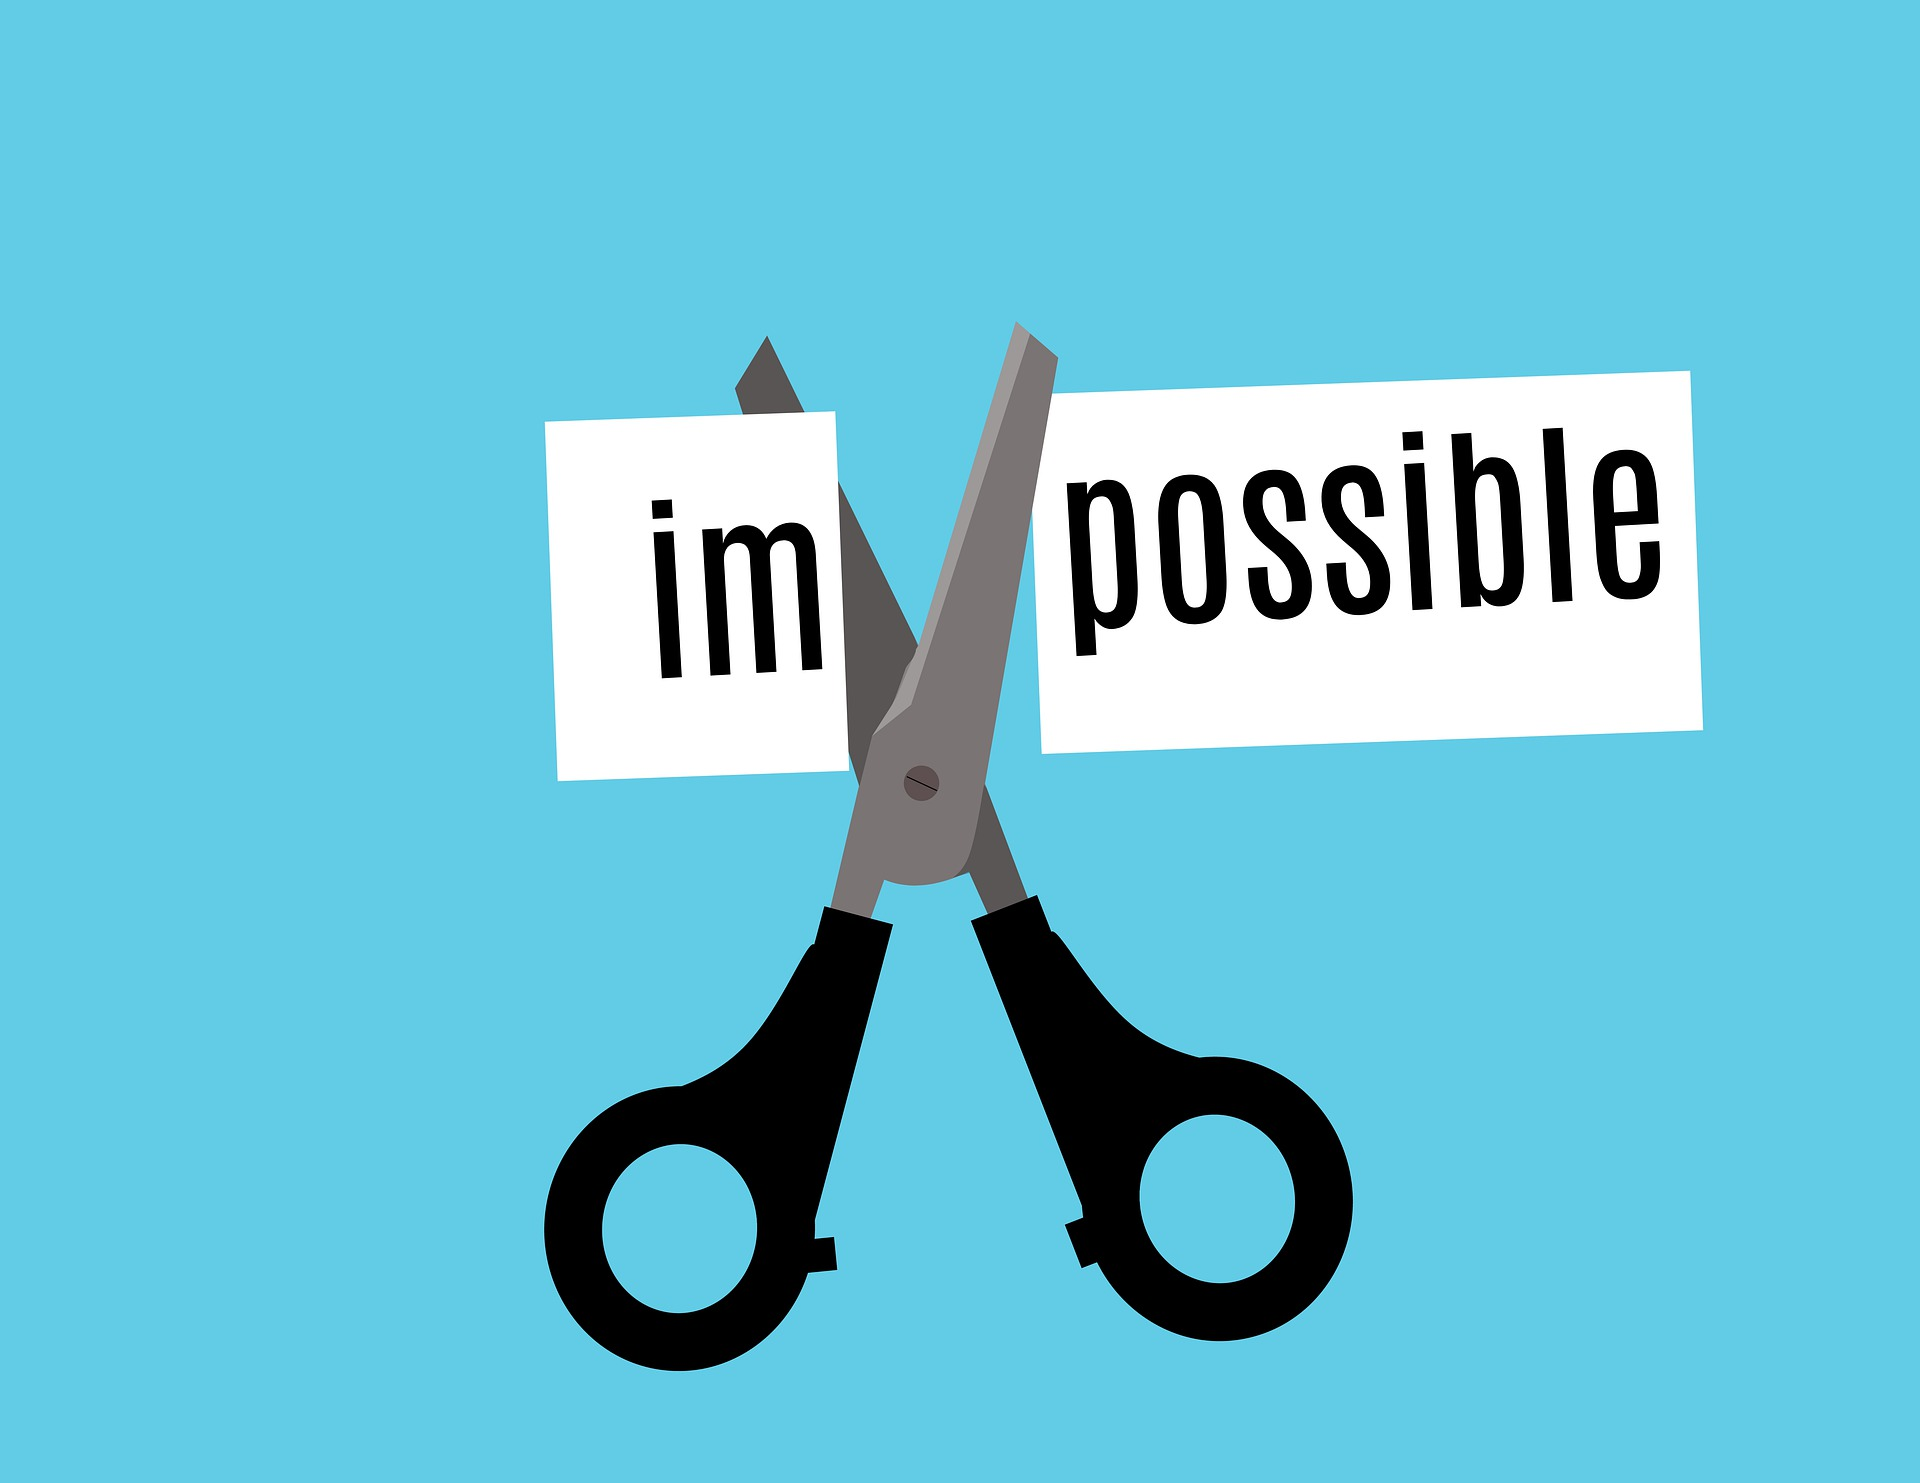 """illustration of scissors cutting the """"im"""" from the word """"impossible"""""""